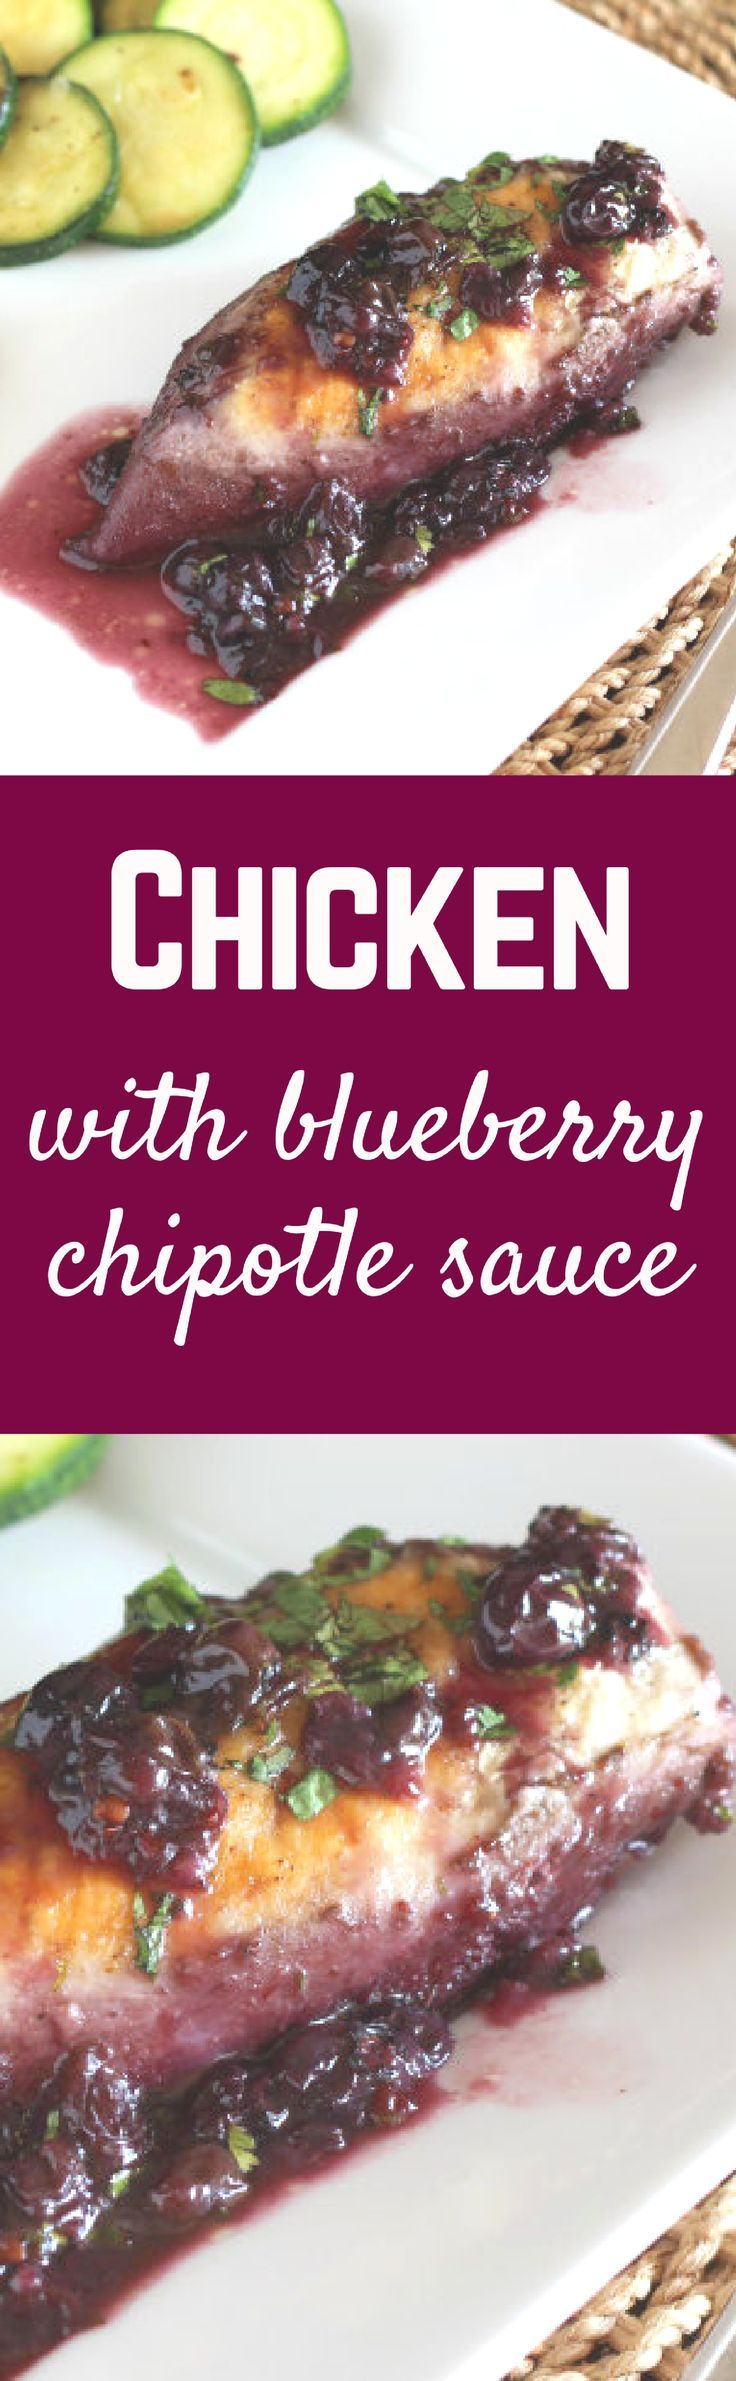 This chicken has a unique blueberry chipotle sauce that is the perfect blend of spicy and sweet. Get the recipe on http://RachelCooks.com!